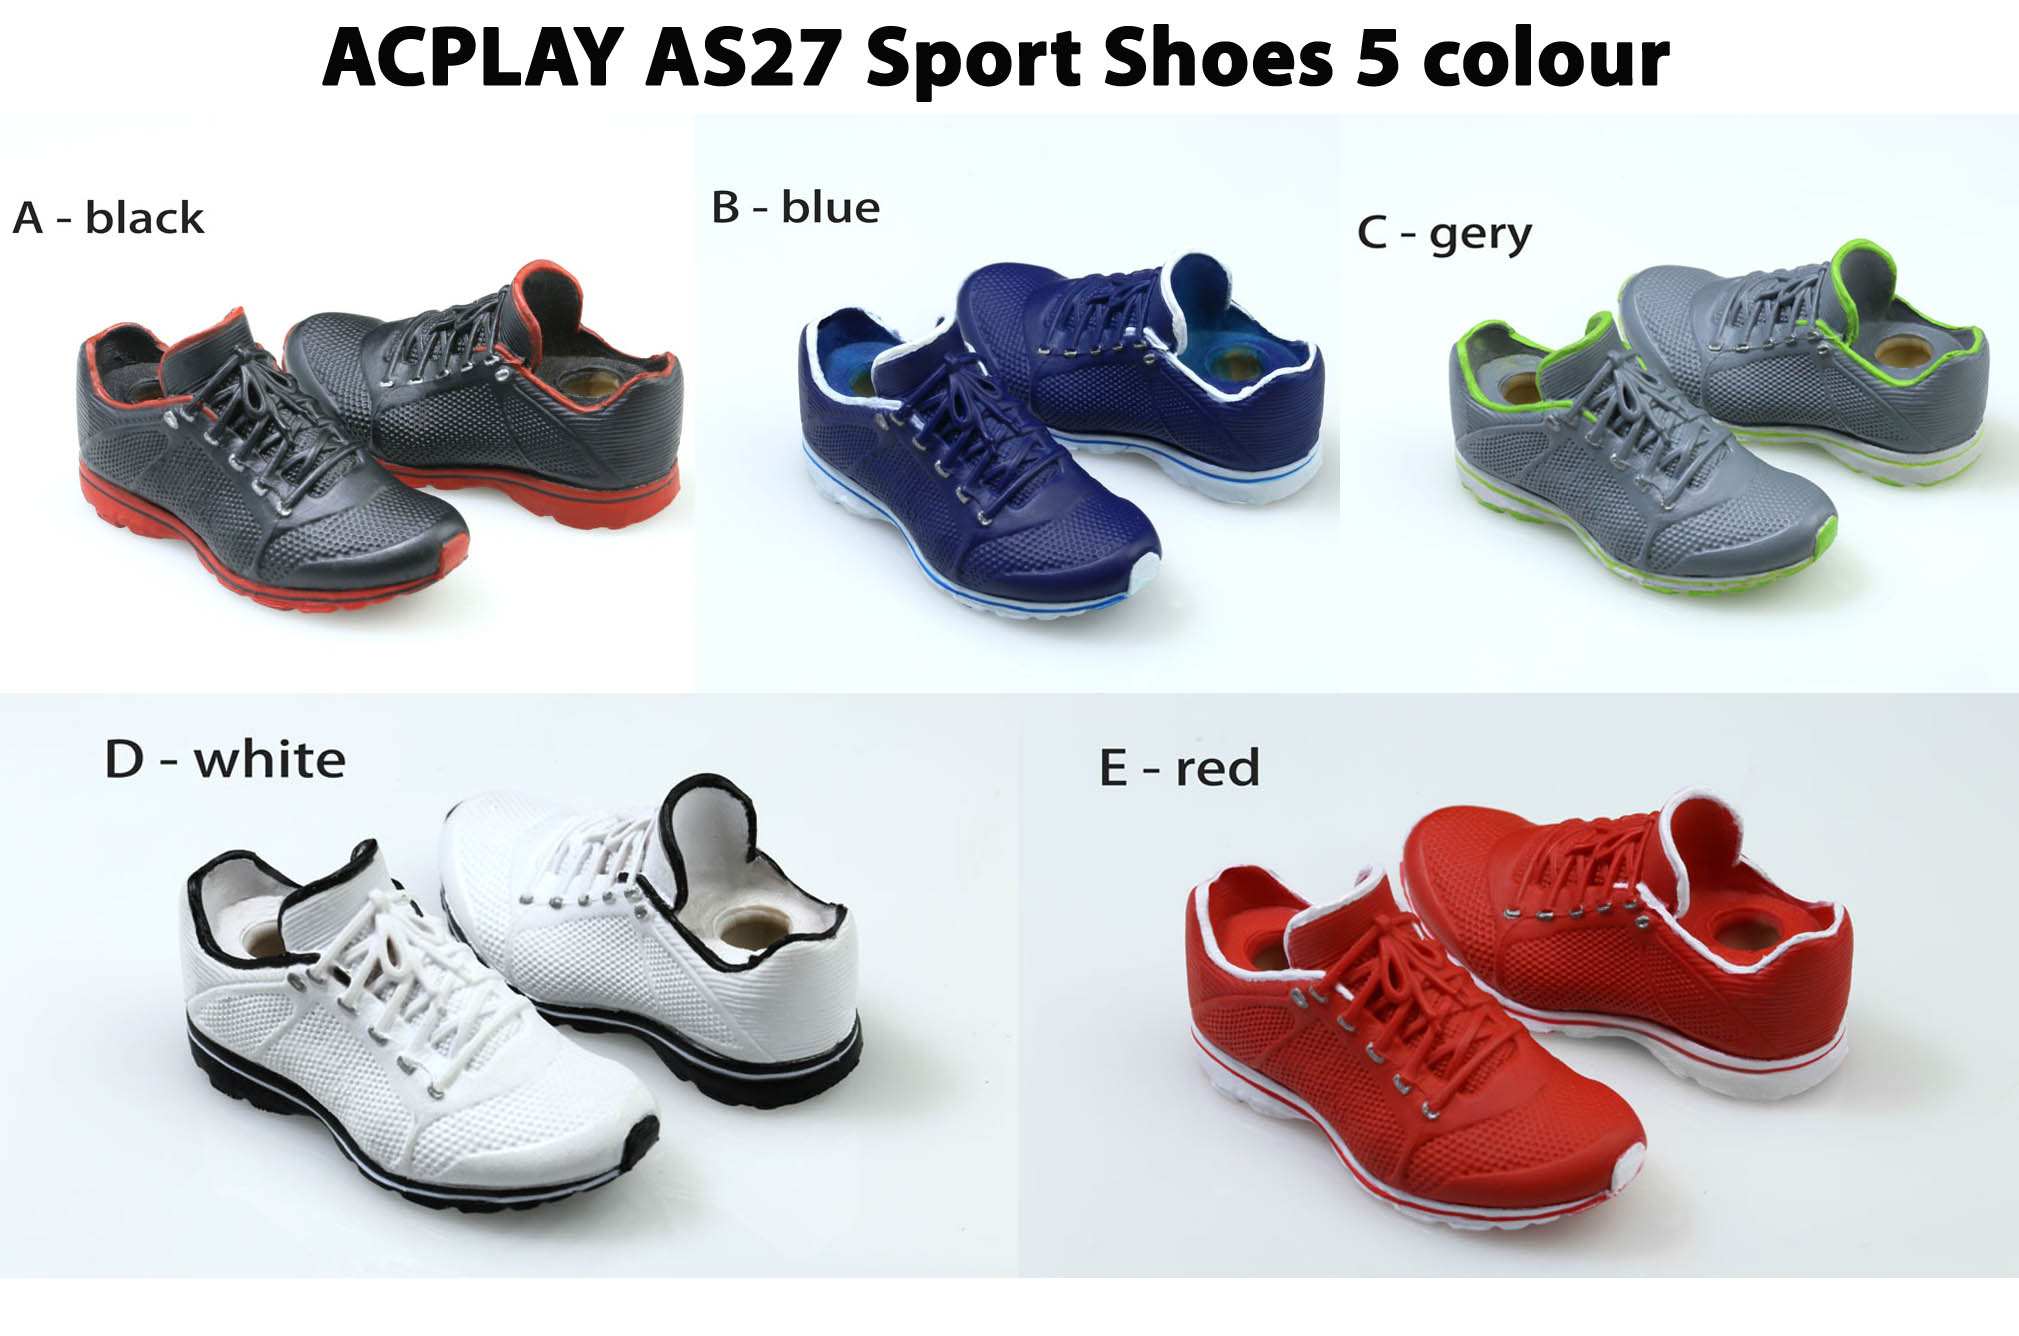 ACPLAY AS27 Sport Shoes 5 colour